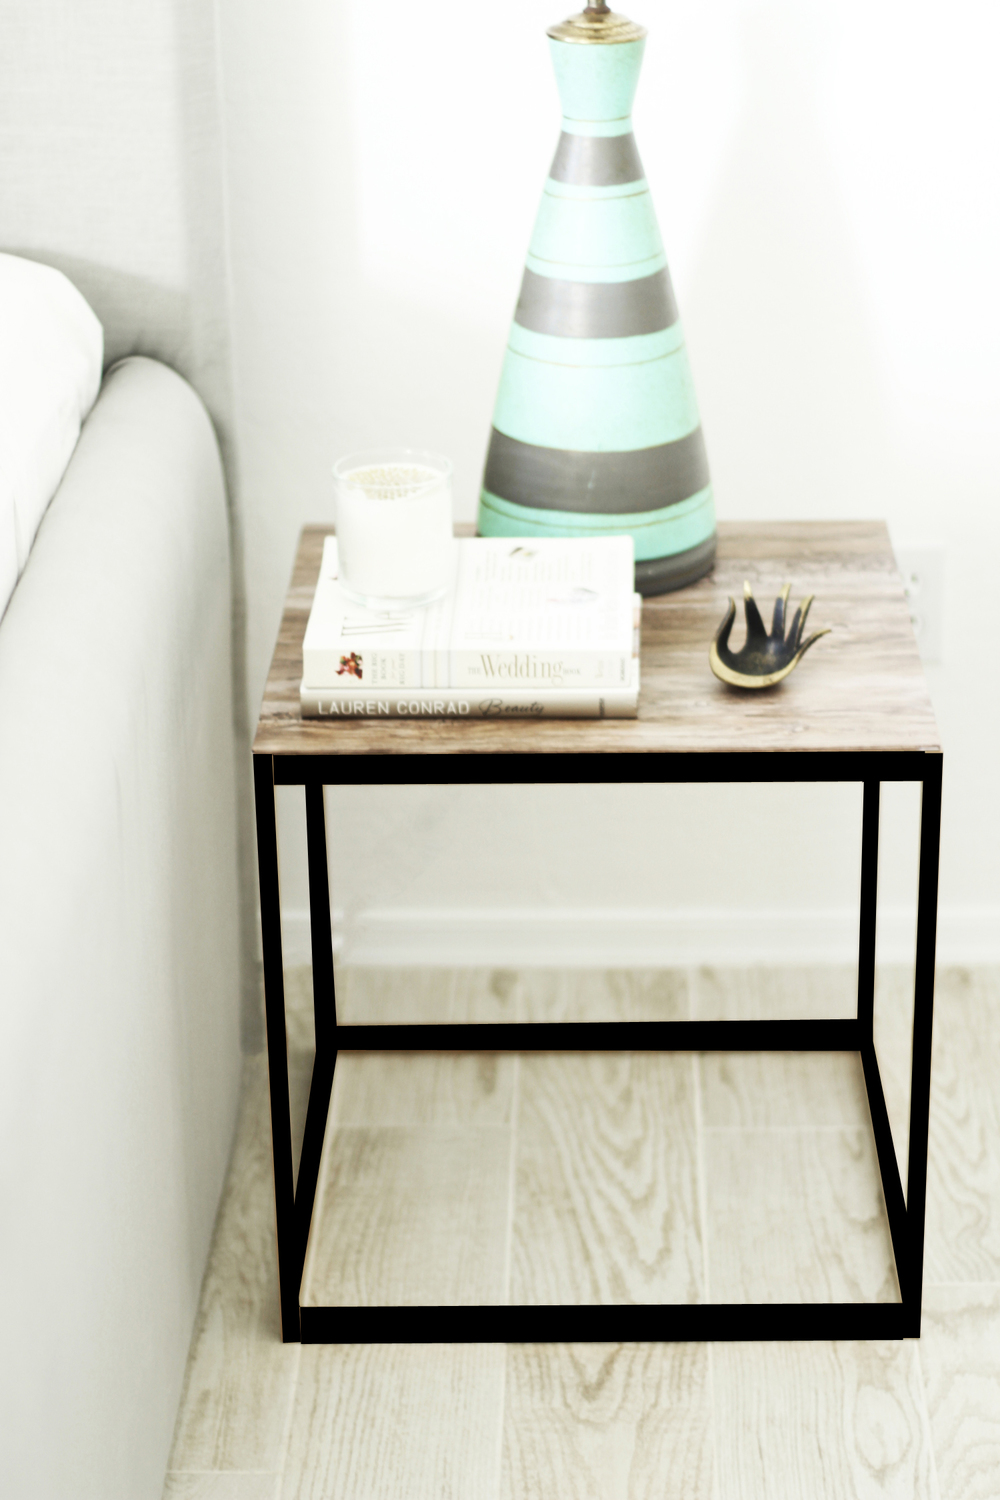 Diy Ikea ikea hack nightstand four ways kristi murphy diy